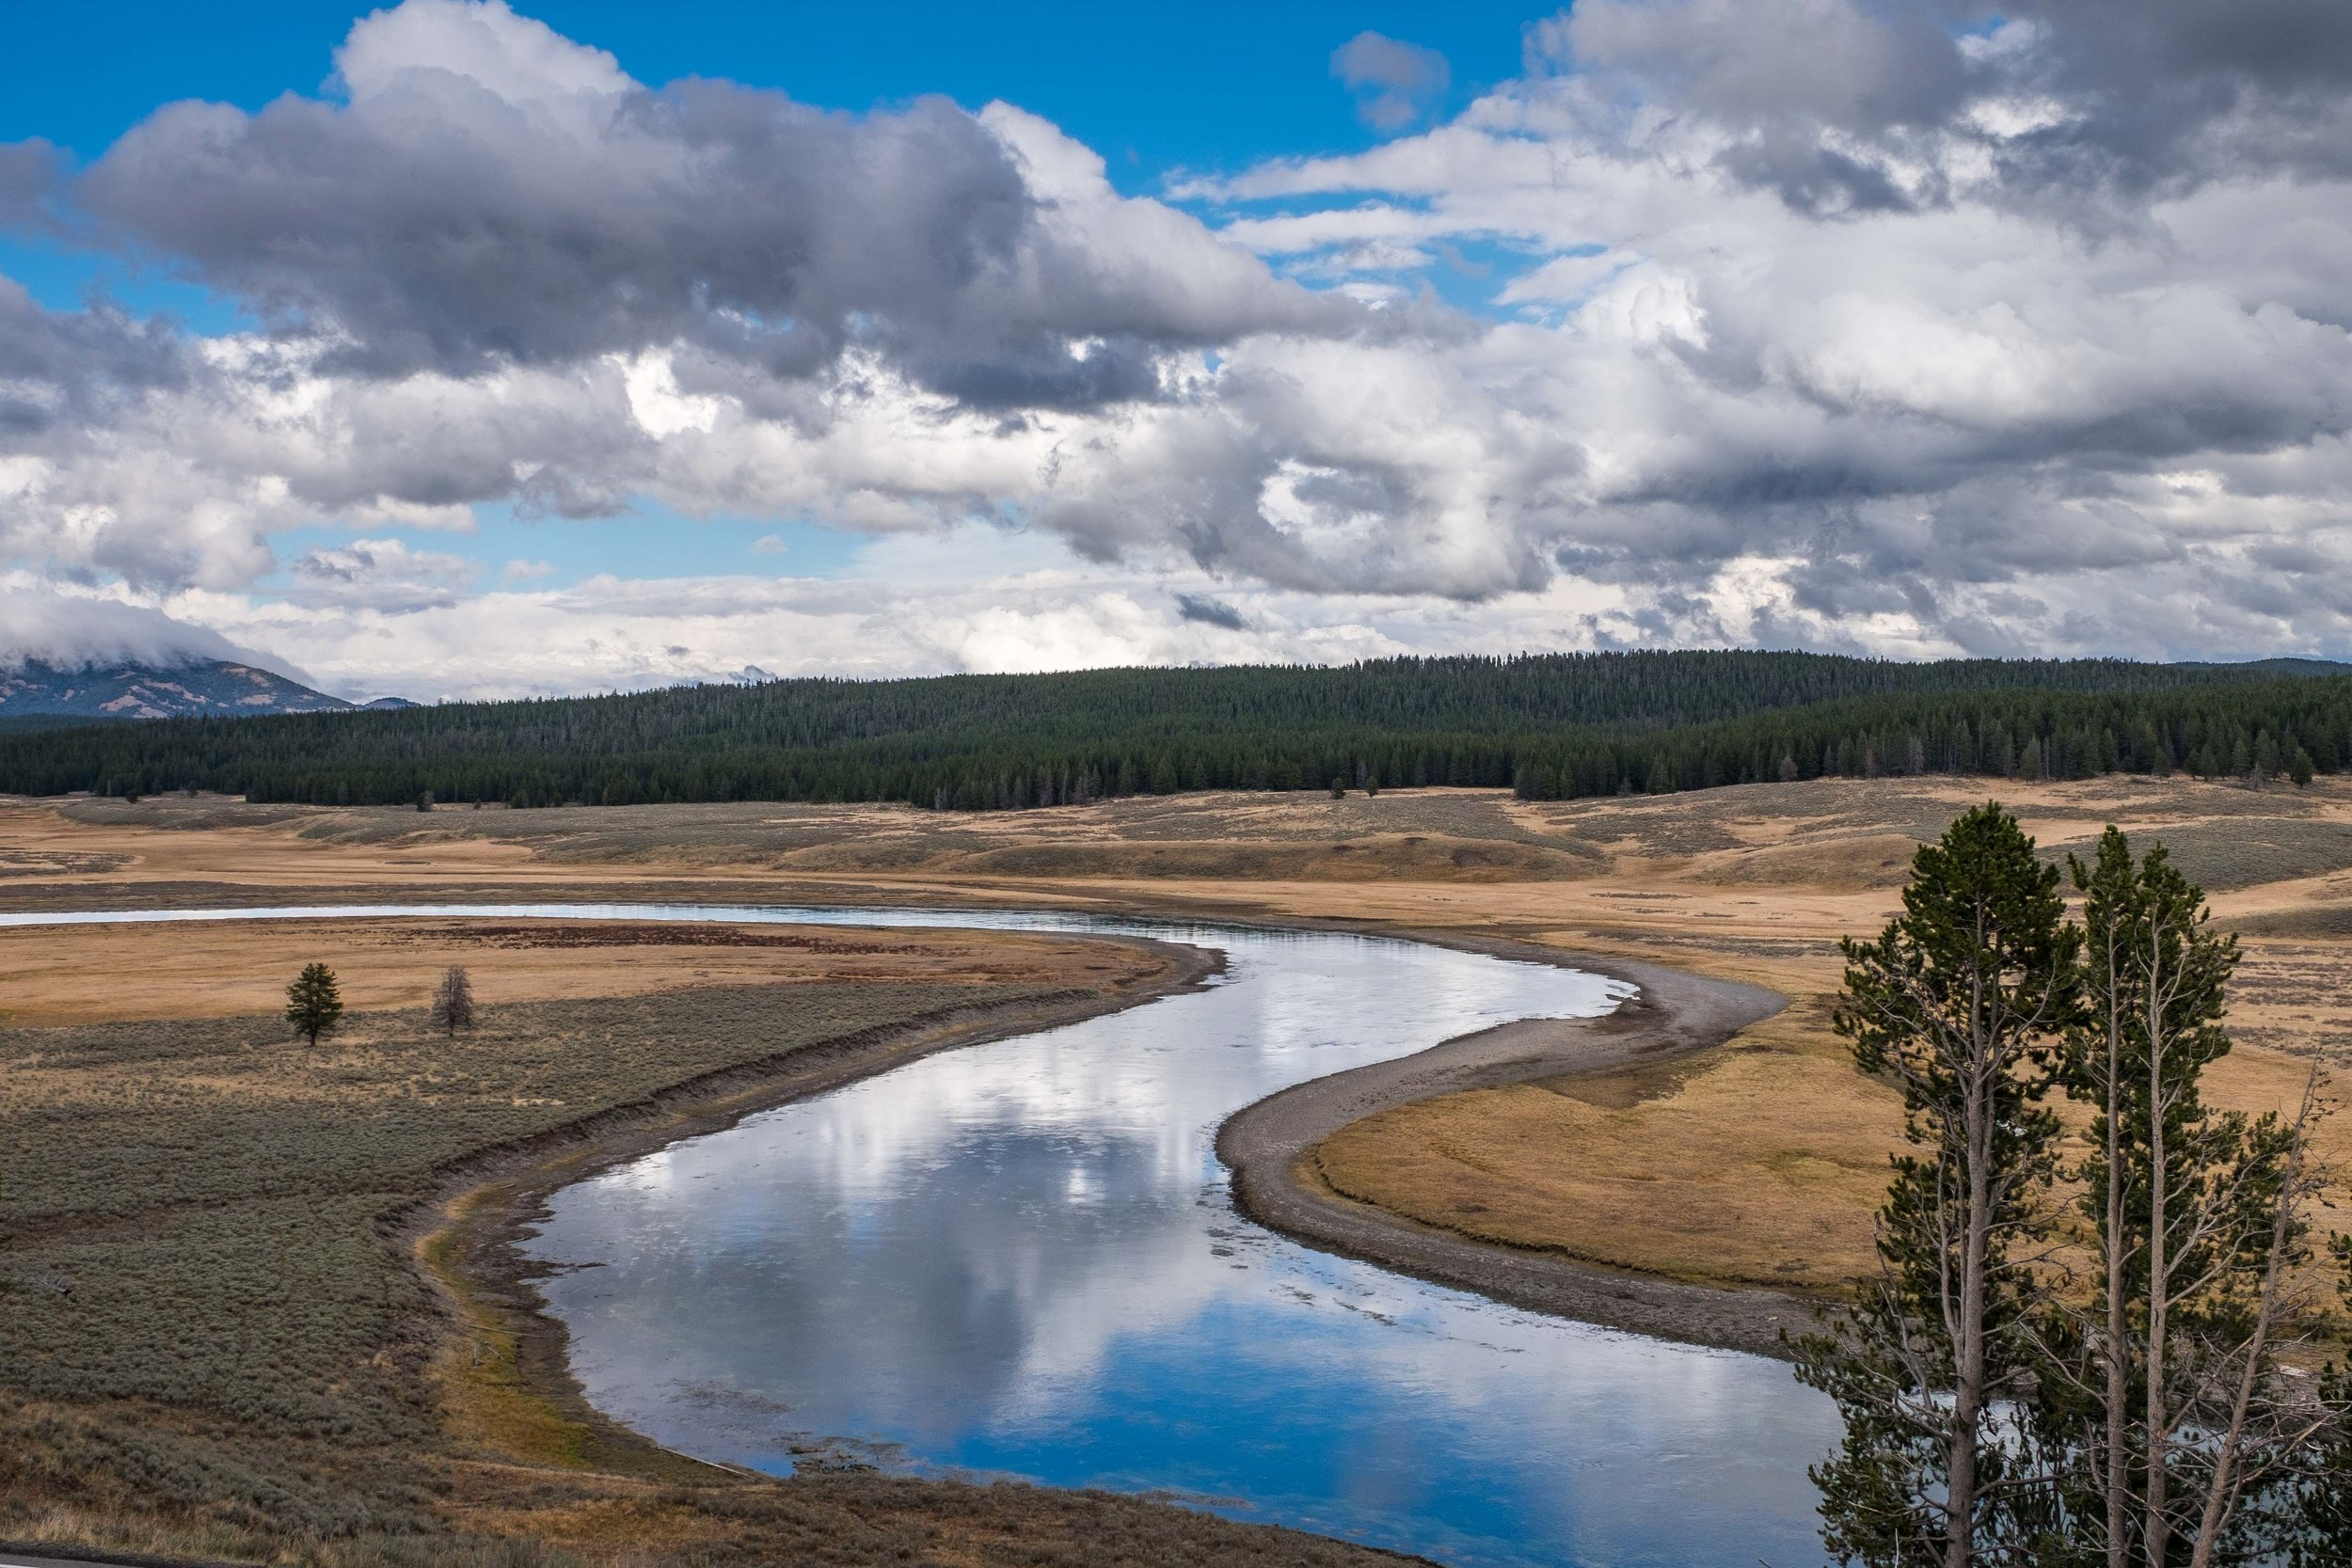 A beautiful S-curve in the Yellowstone River in Hayden Valley.